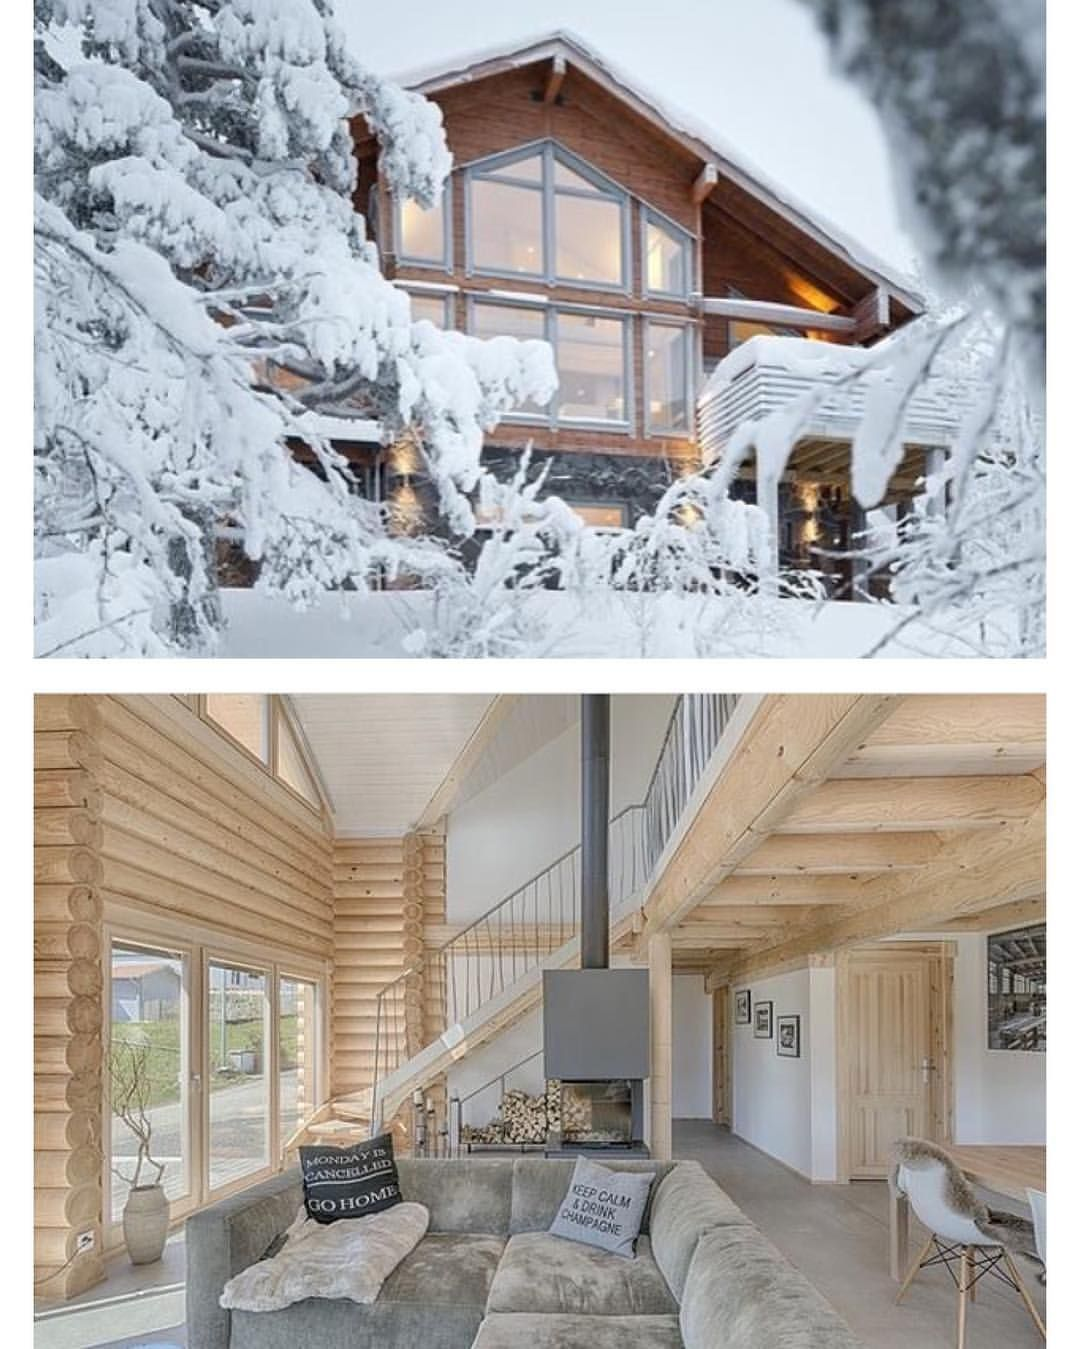 Pin by Jennifer Parisi on Mtn Log homes, Home, Cabin